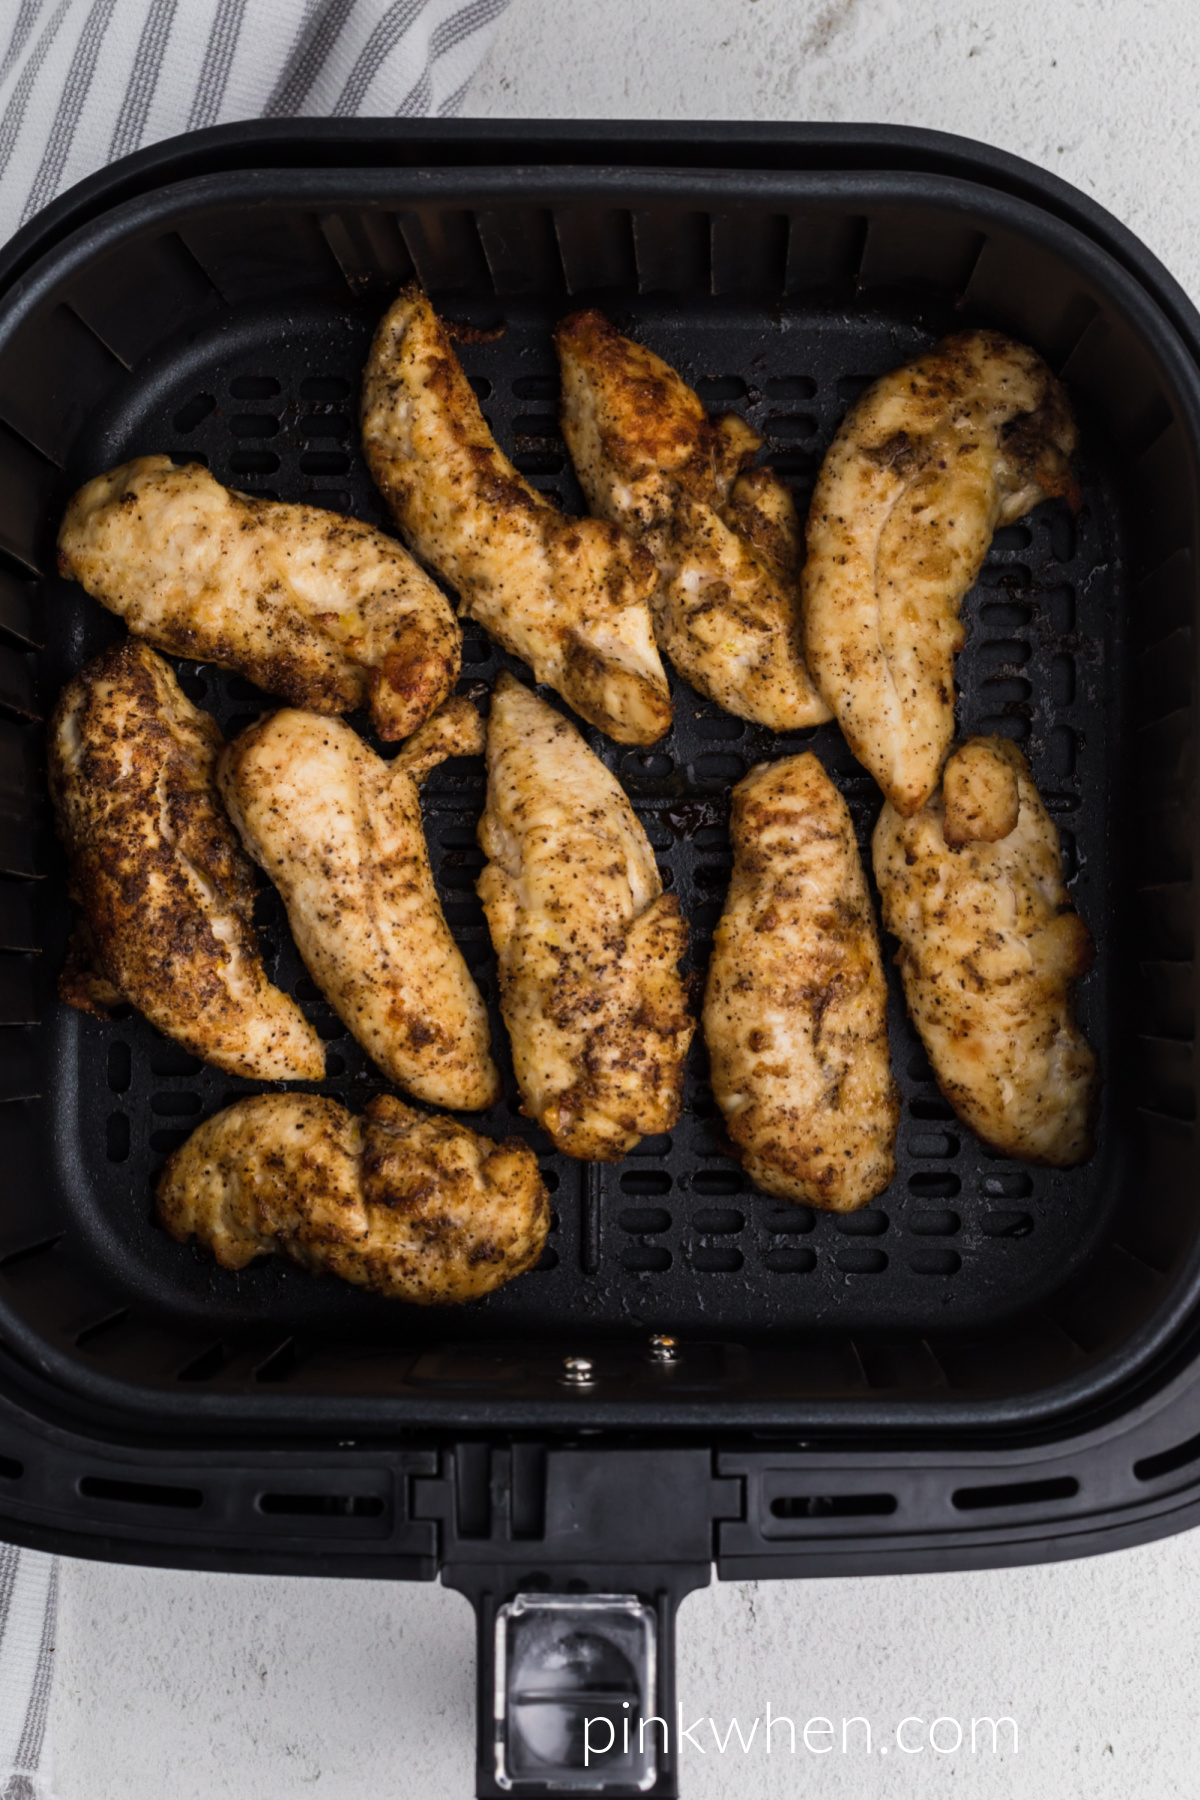 Grilled chicken tenders in the basket of the air fryer.